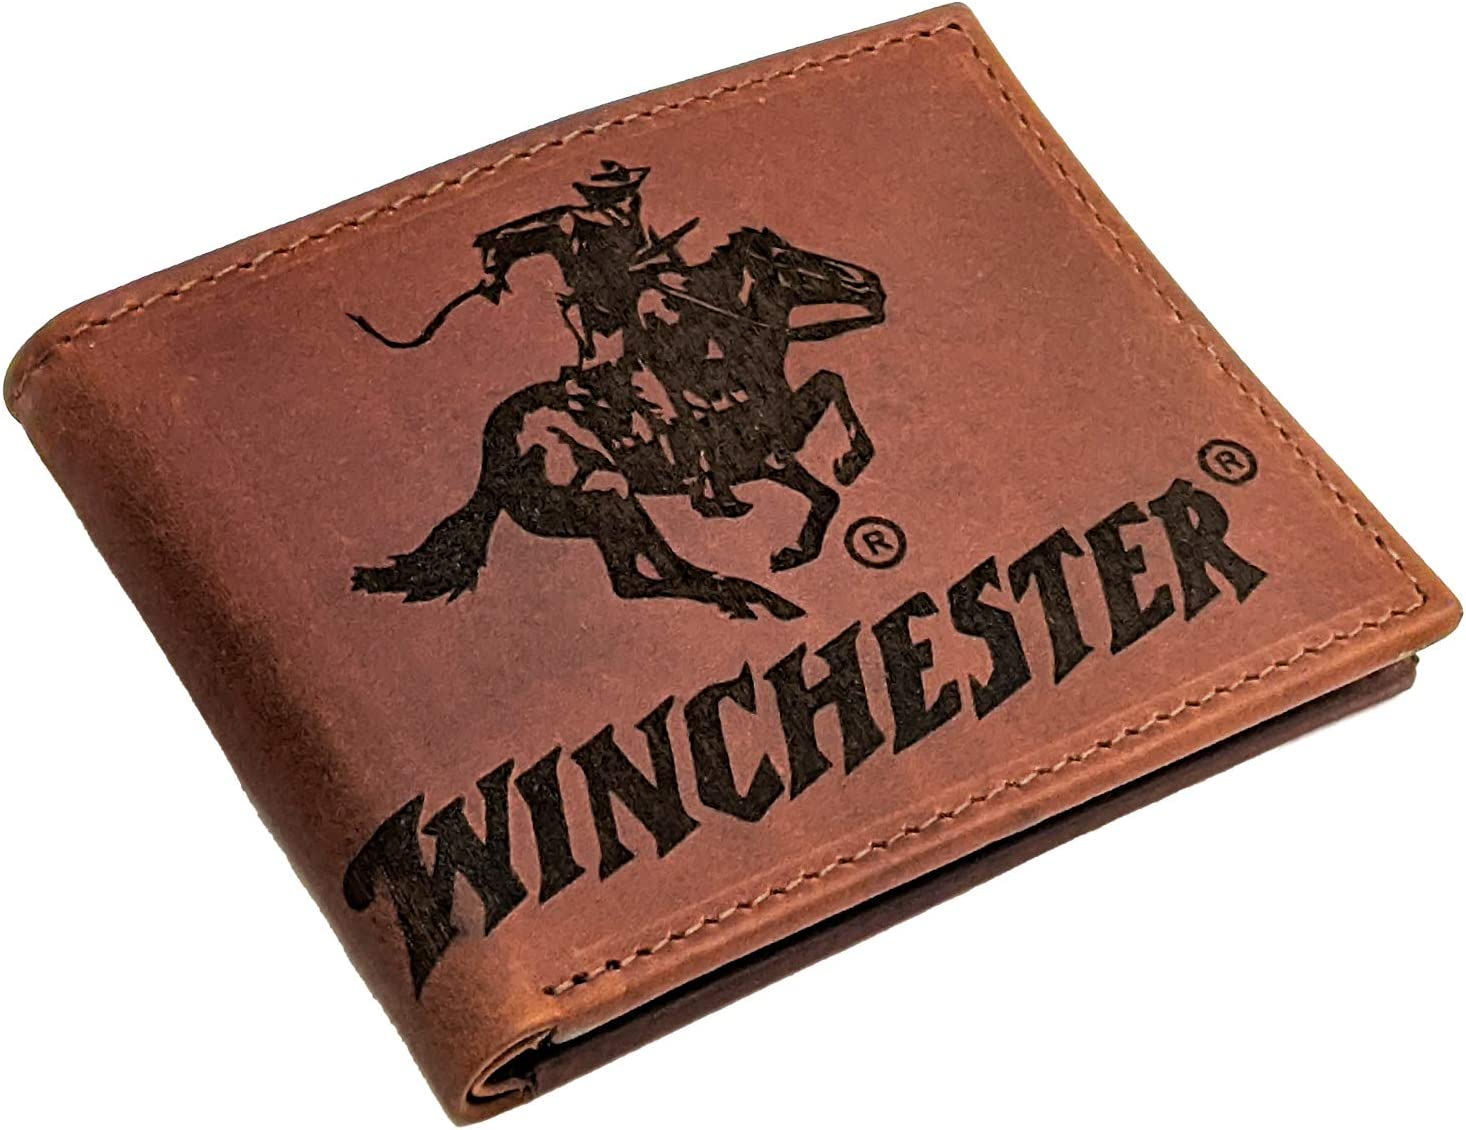 Winchester Slim Bifold Leather Wallet For Men With RFID Blocking|ID Window|Genuine Leather Thin Men's Travel Wallet|Card Holder|Multiple Card Slots|Brown| Cowboy| Big Dallas